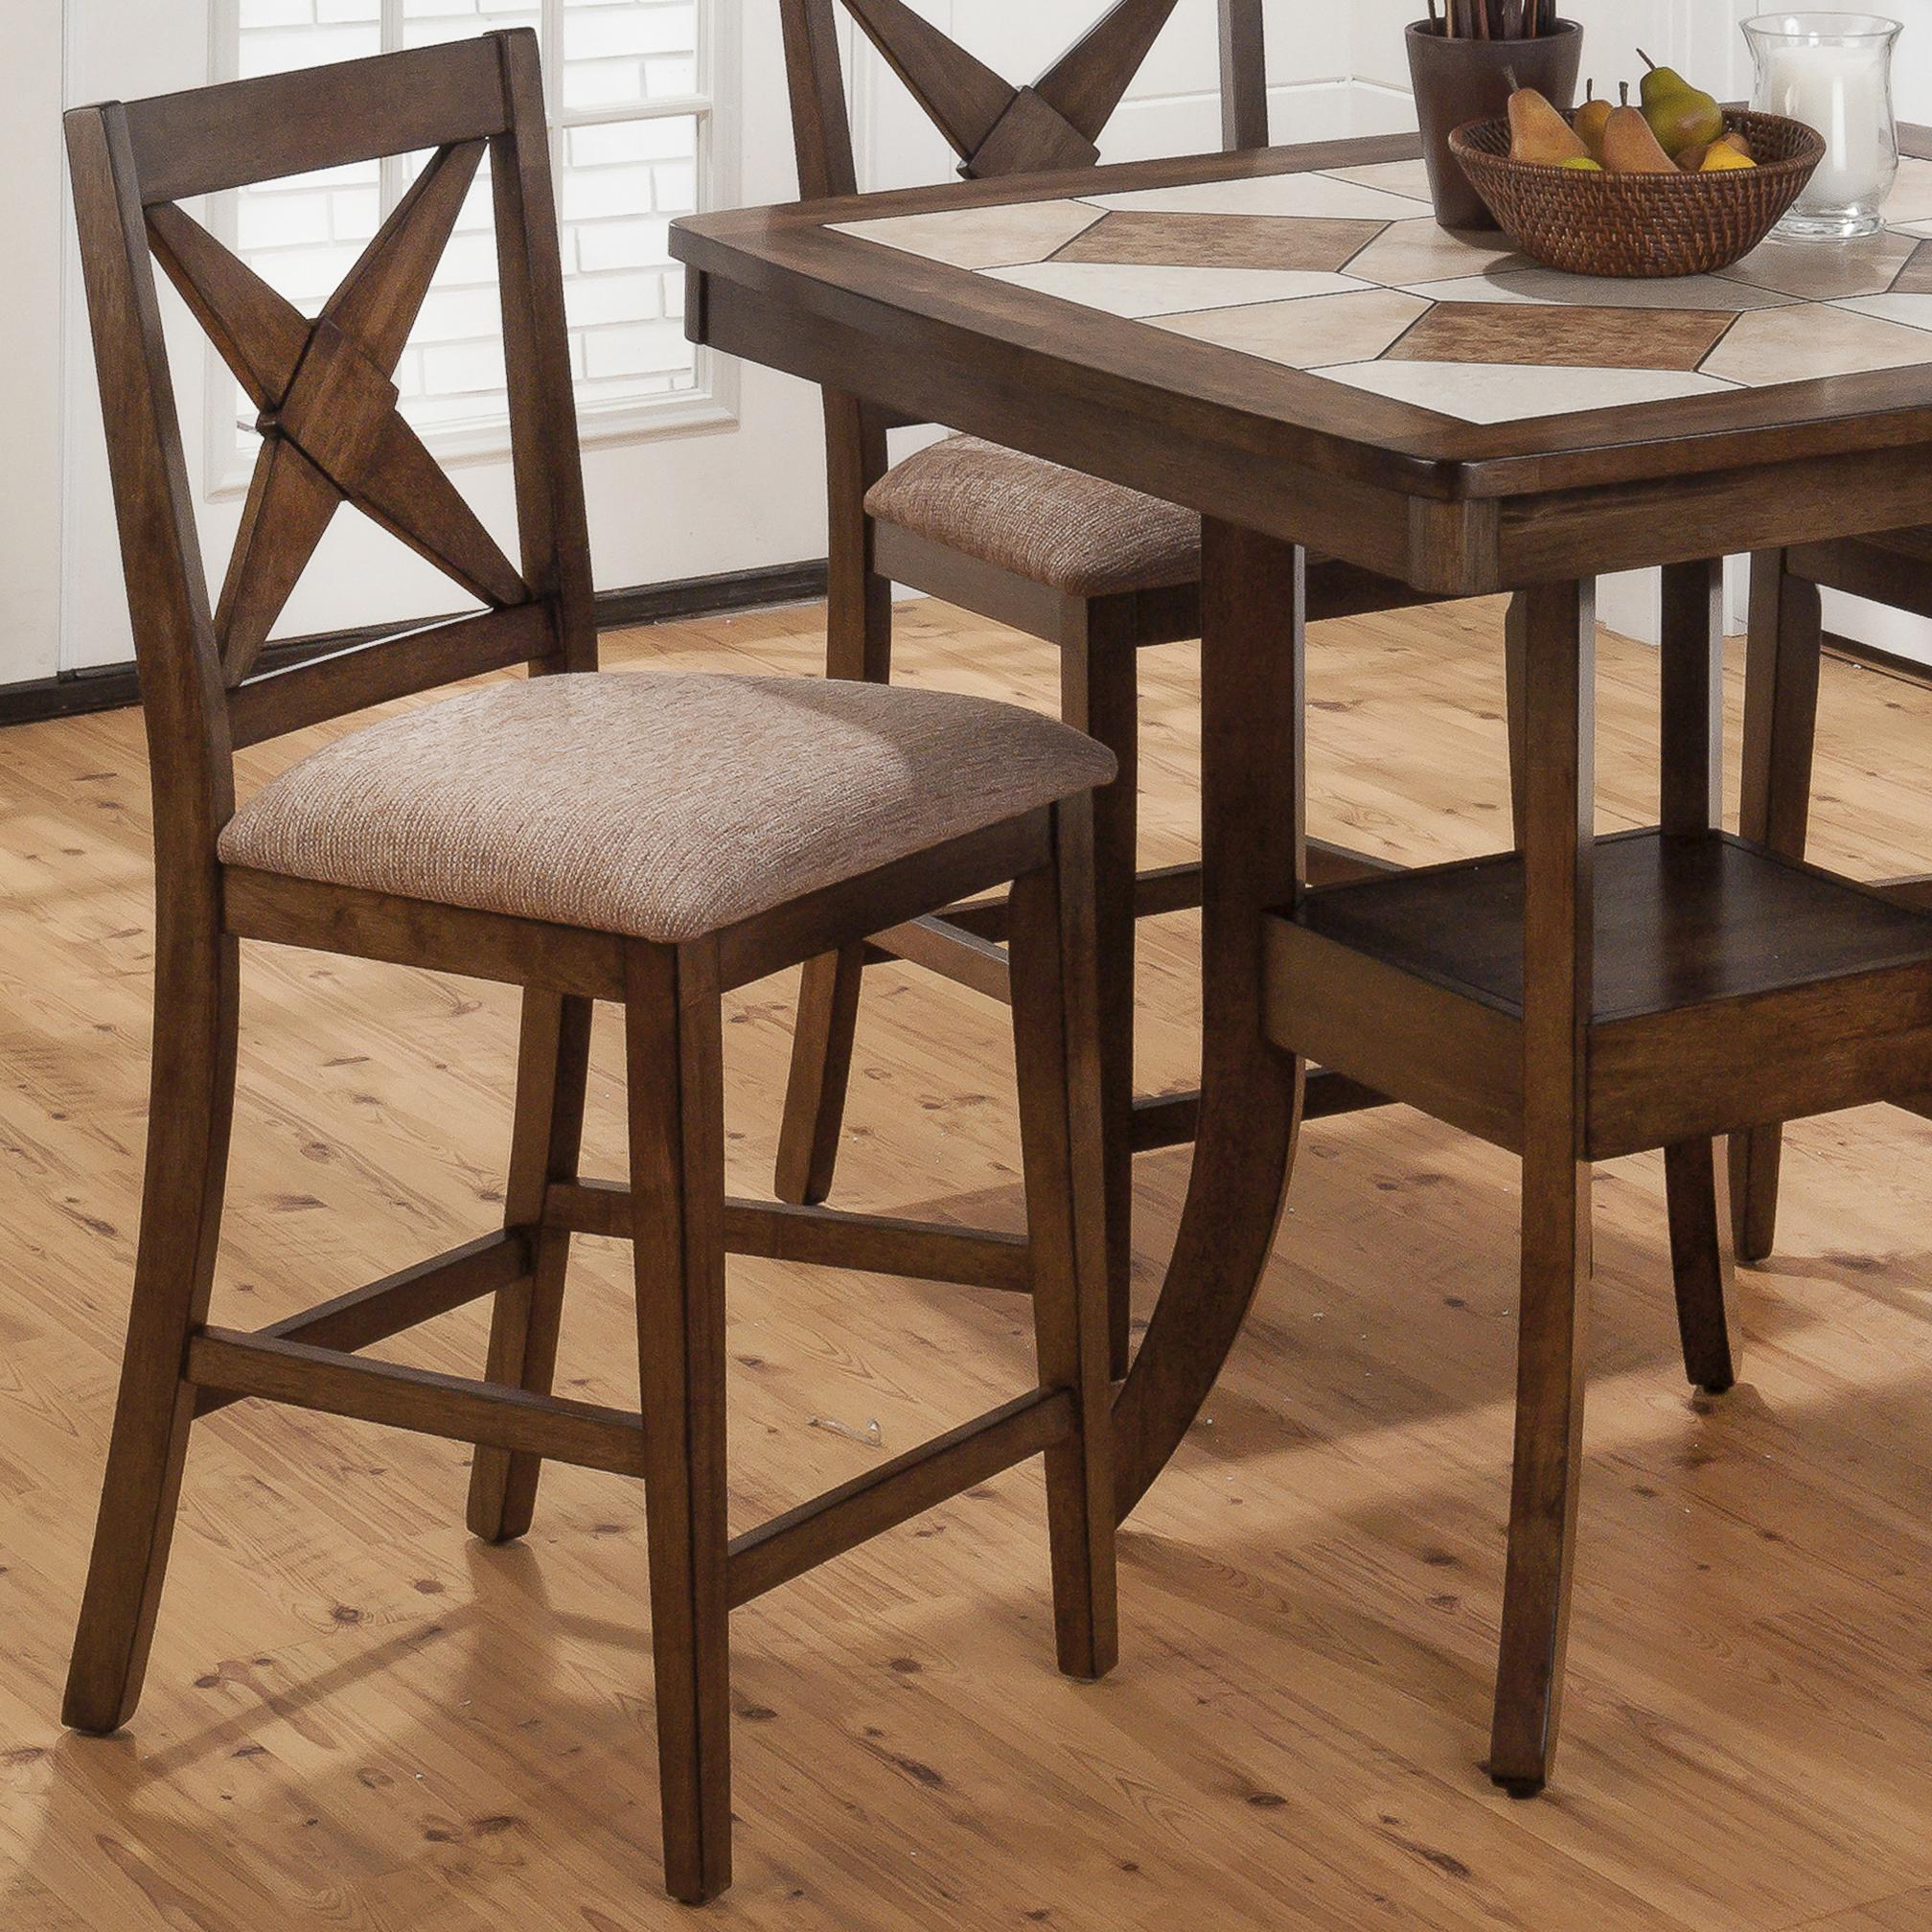 Jofran Tucson Brown 794 Bs221kd Counter Height X Back Stool With Padded Seat Furniture And